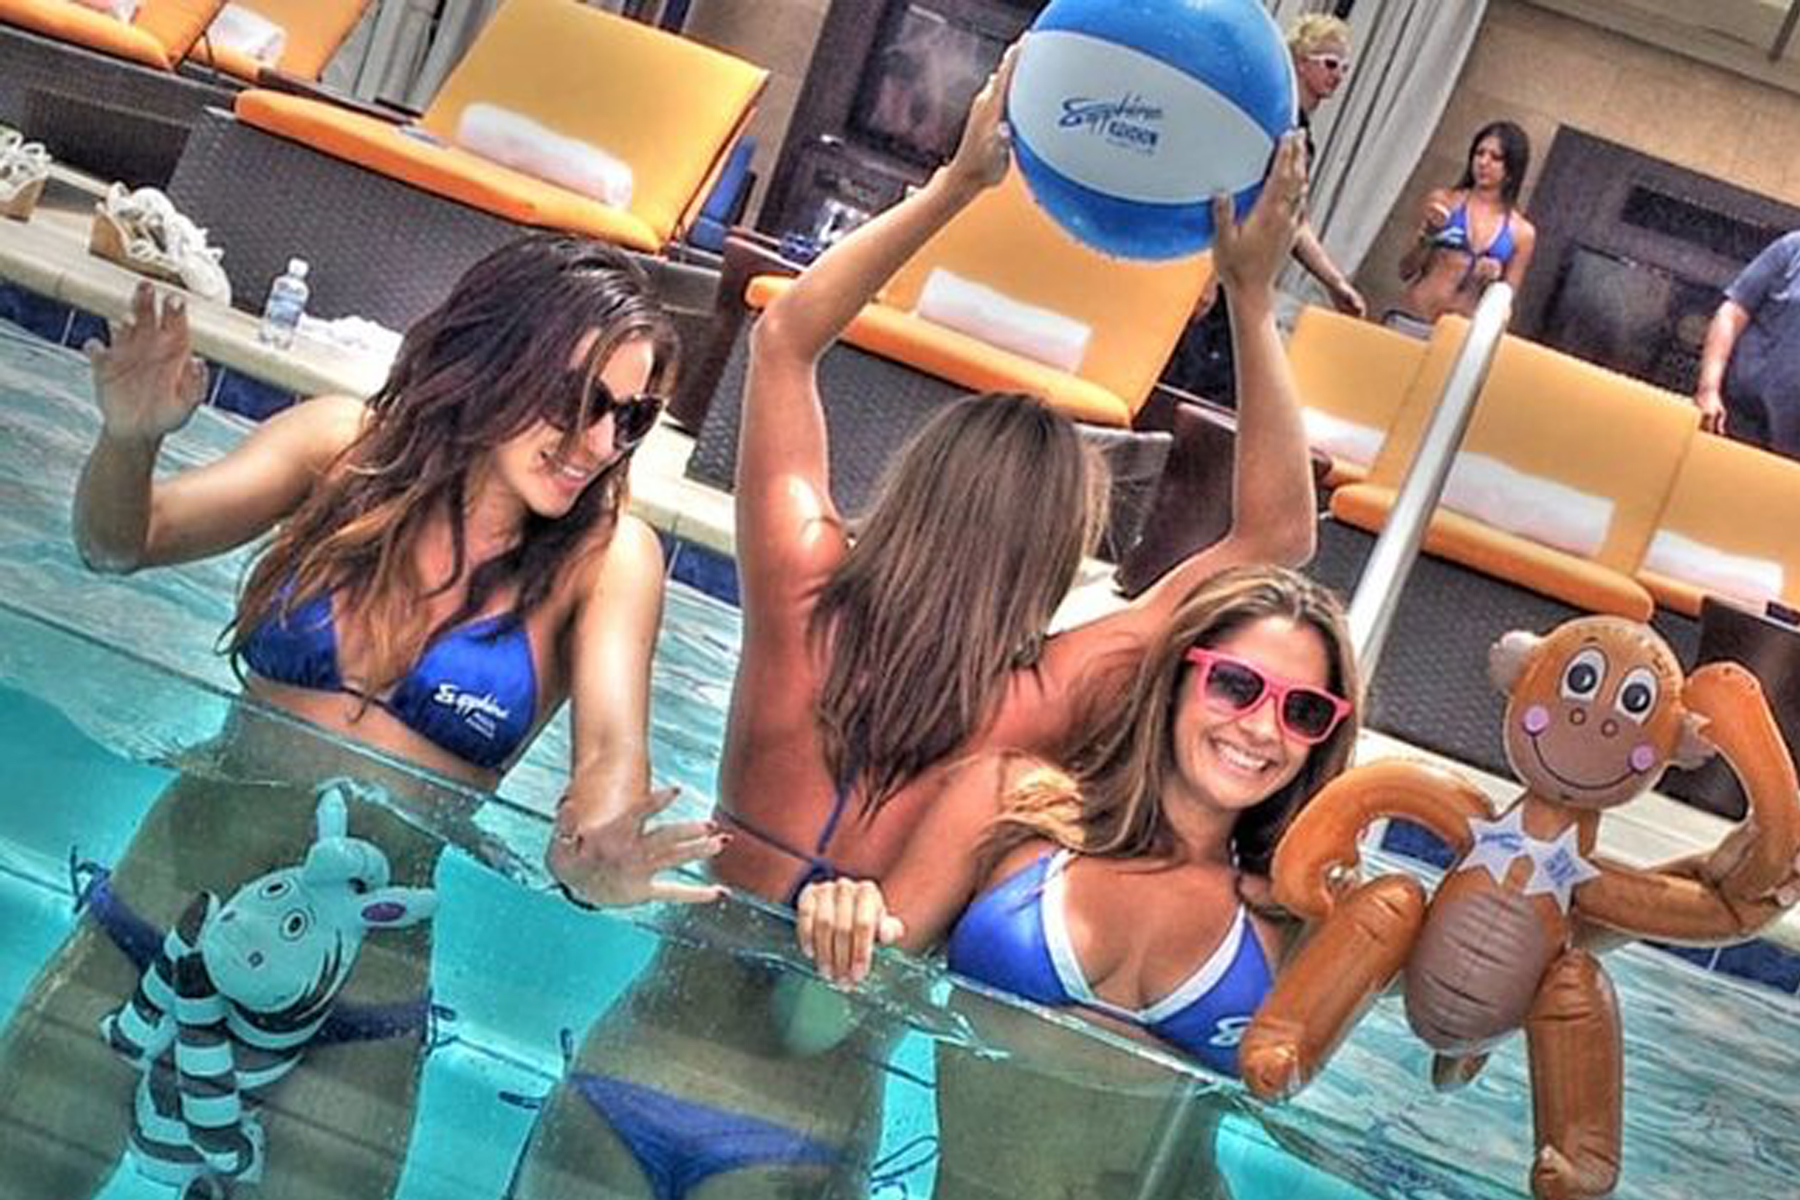 Sapphires Pool Party and Dayclub in Las Vegas